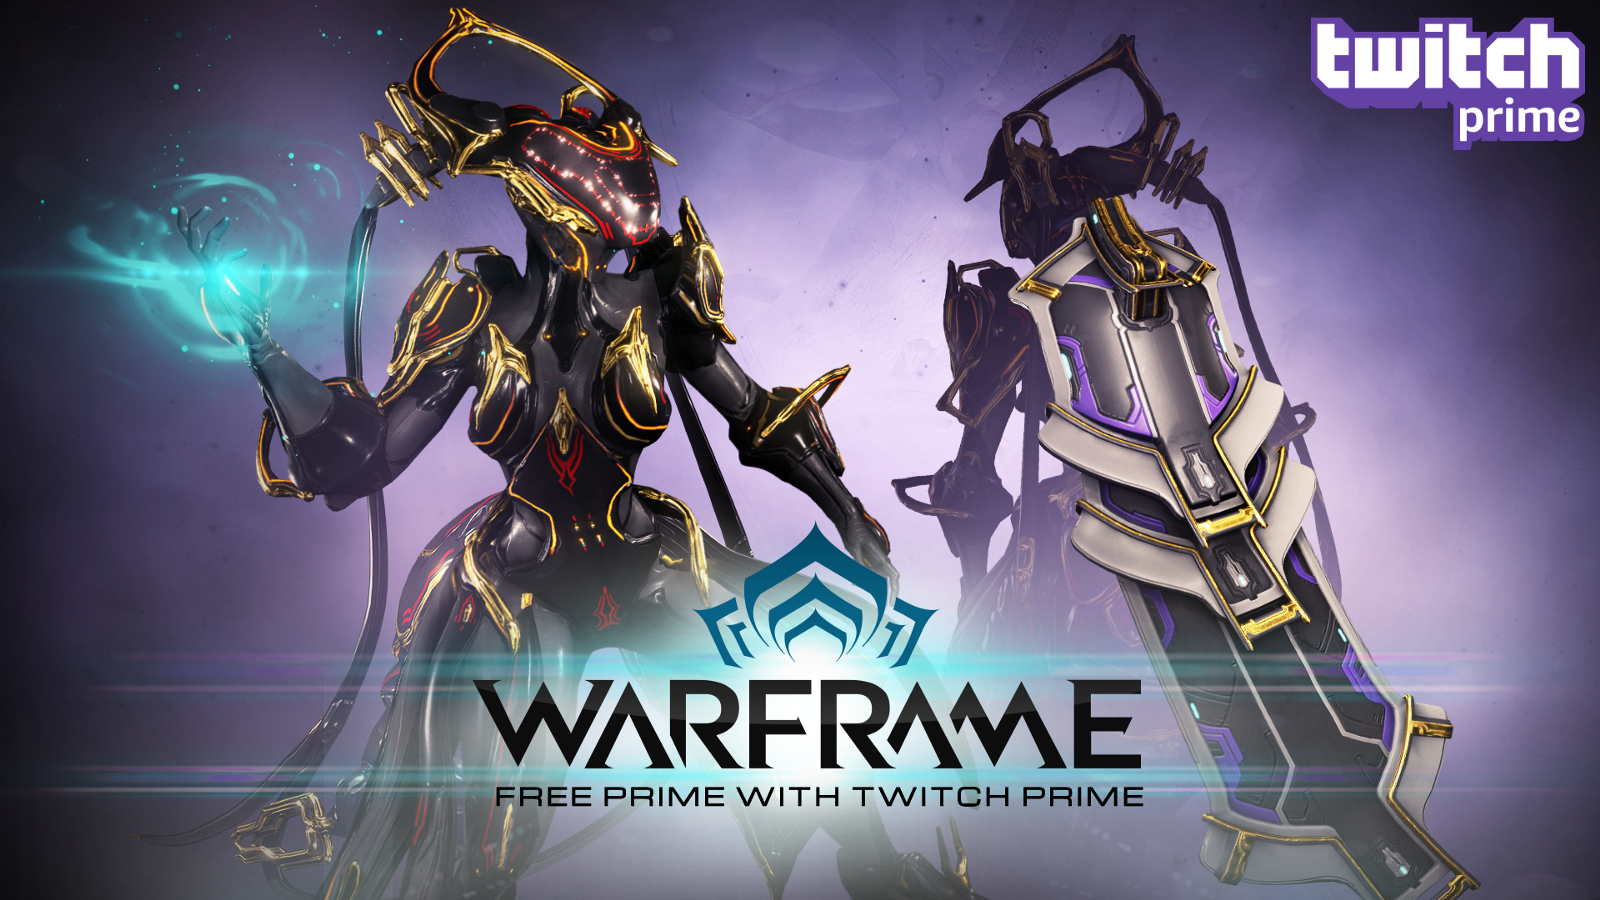 buy warframe twitch prime weapon   trinity bundle and download